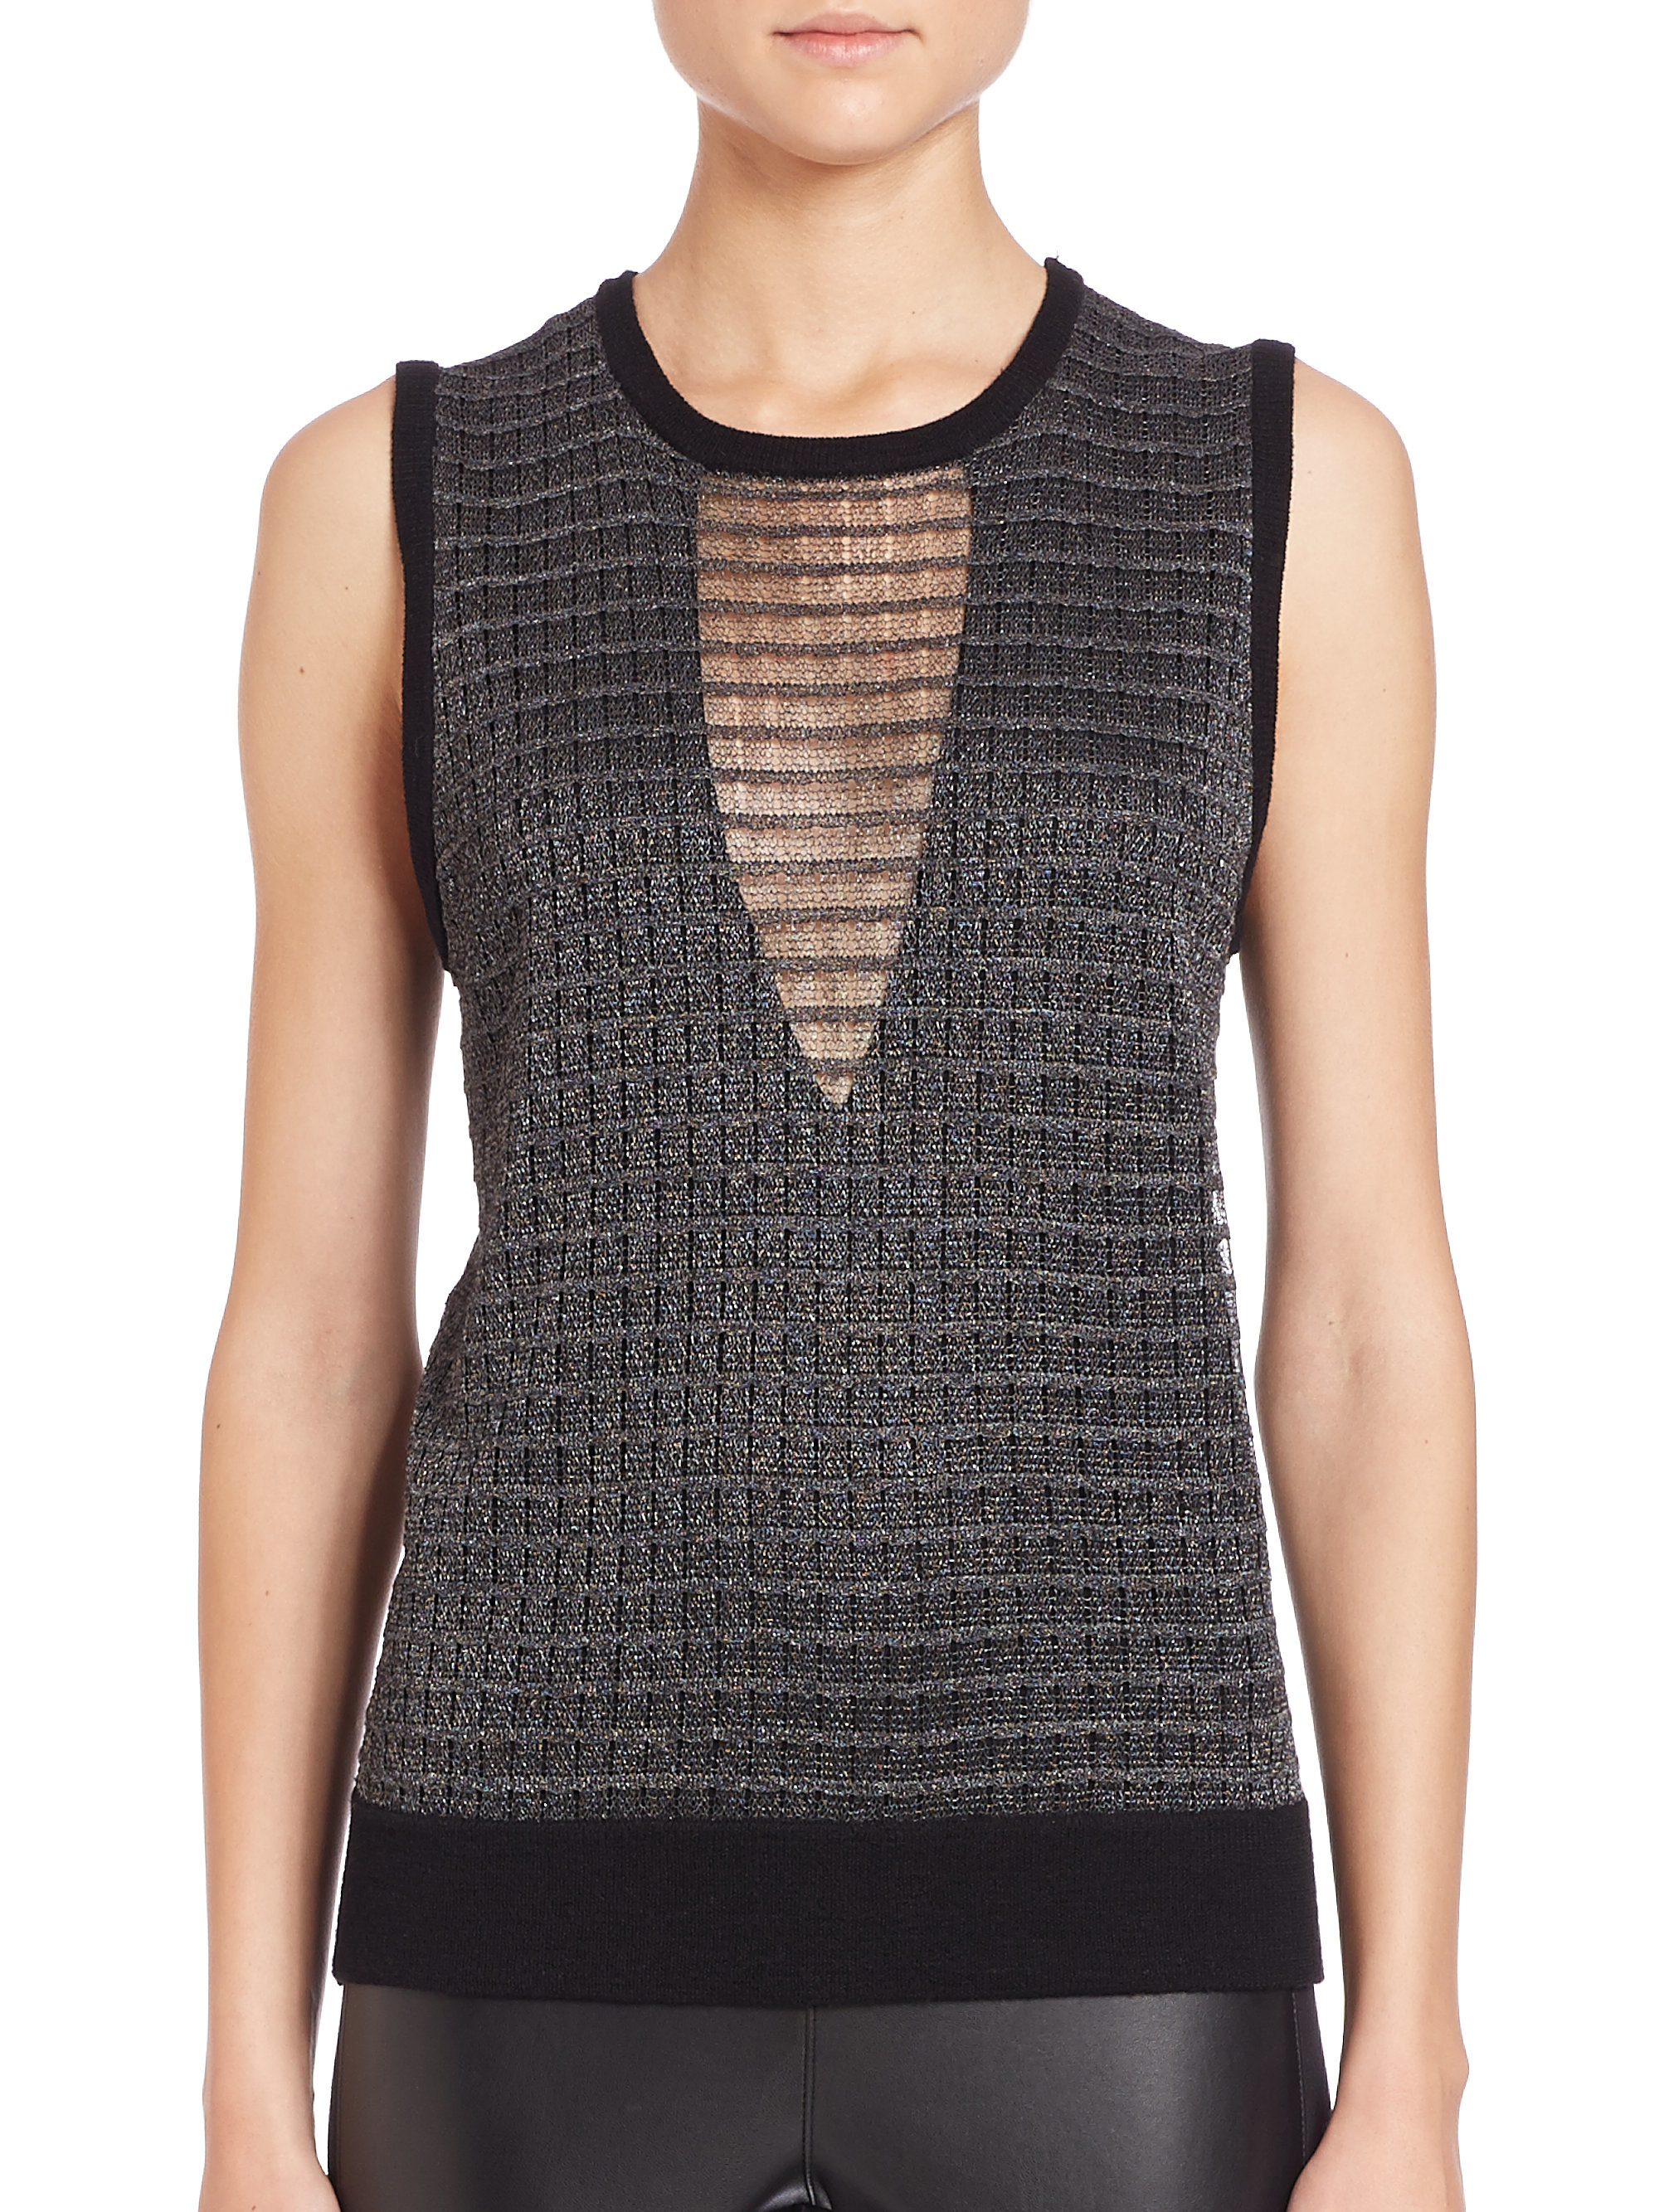 Find great deals on eBay for black sweater vest. Shop with confidence. Skip to main content. eBay: 2 Womens Esperanto V neck Sweater Vests black and blue Medium. Pre-Owned. $ or Best Offer +$ shipping. Tommy Bahama Black Silk Blend Sweater Vest V Neck Size M. Pre-Owned. $